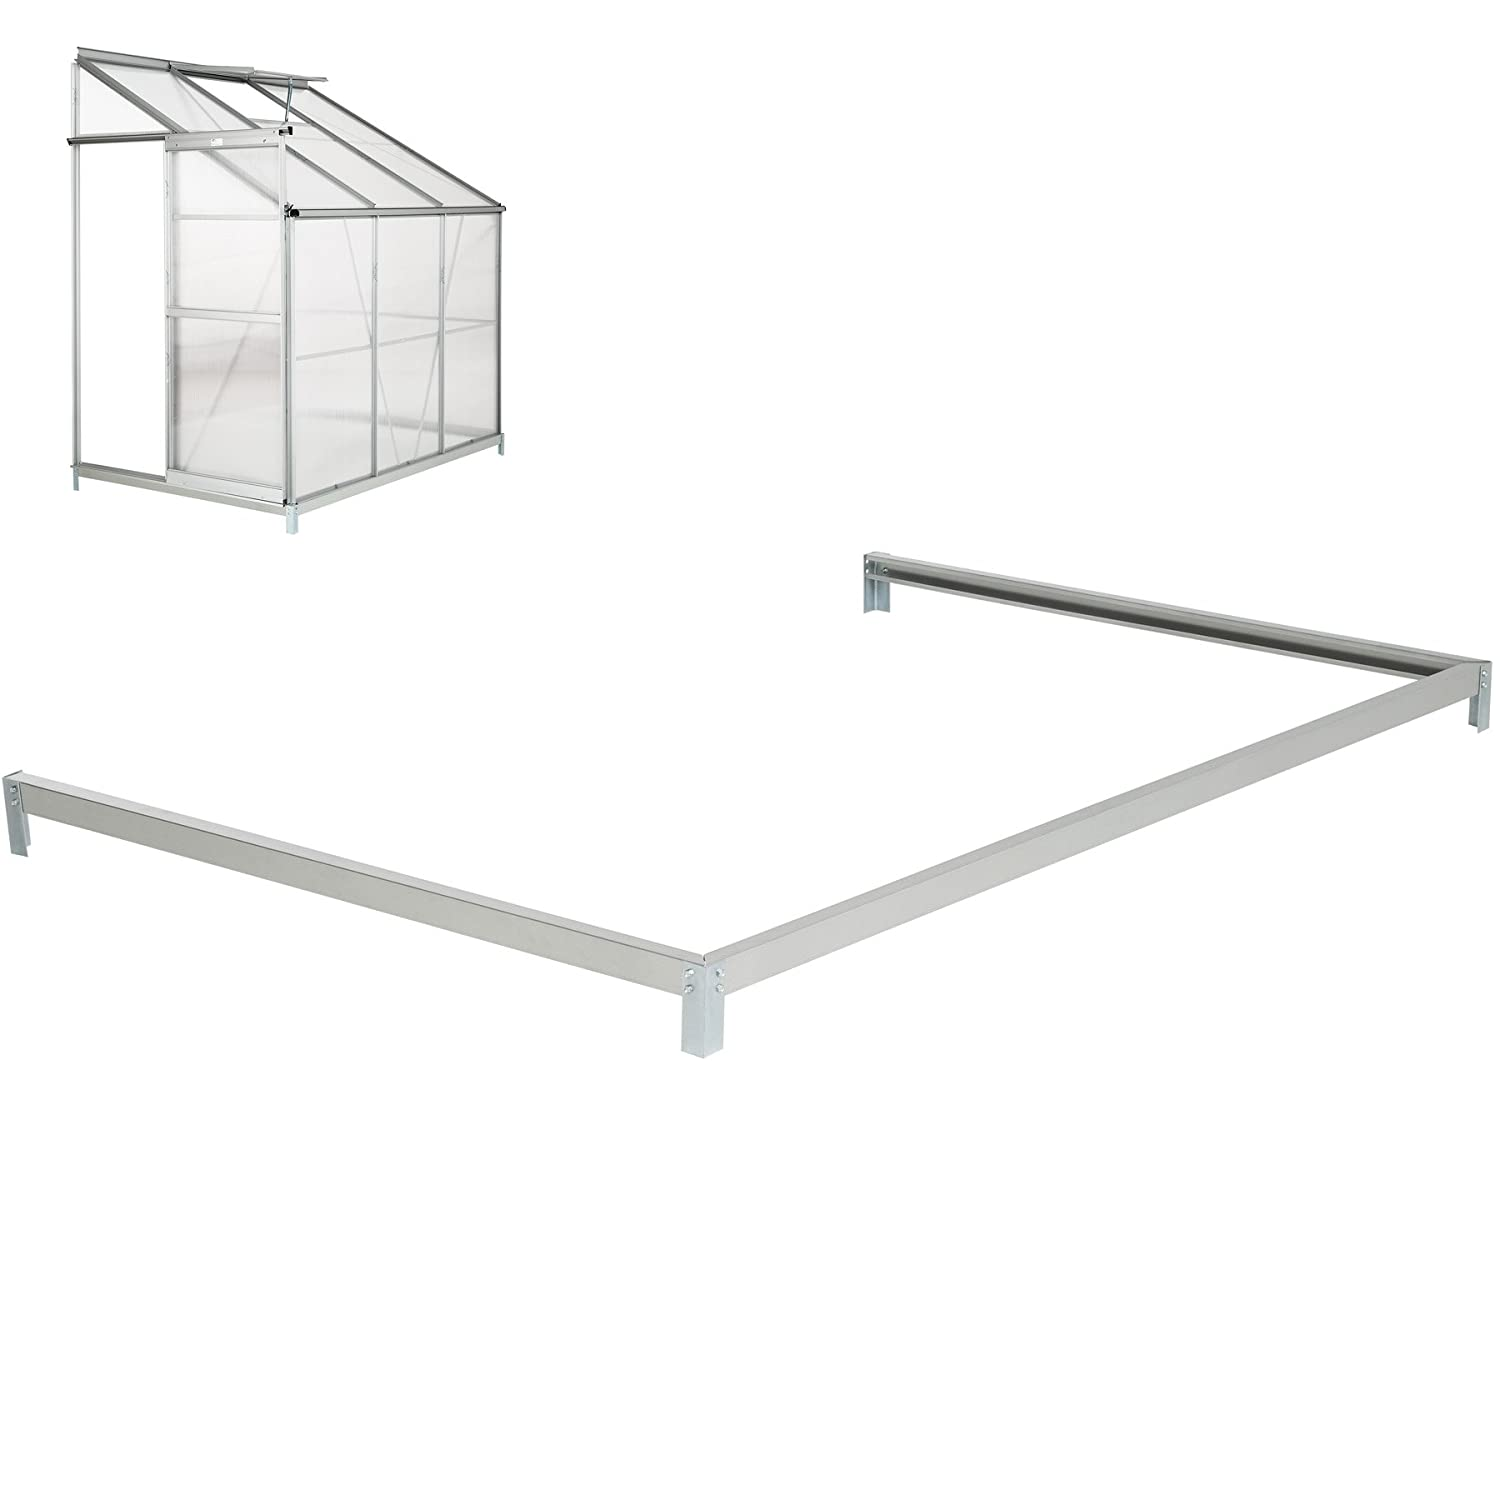 TecTake Lean to greenhouse base foundation 192x127x12 cm steel galvanized frame base fixation